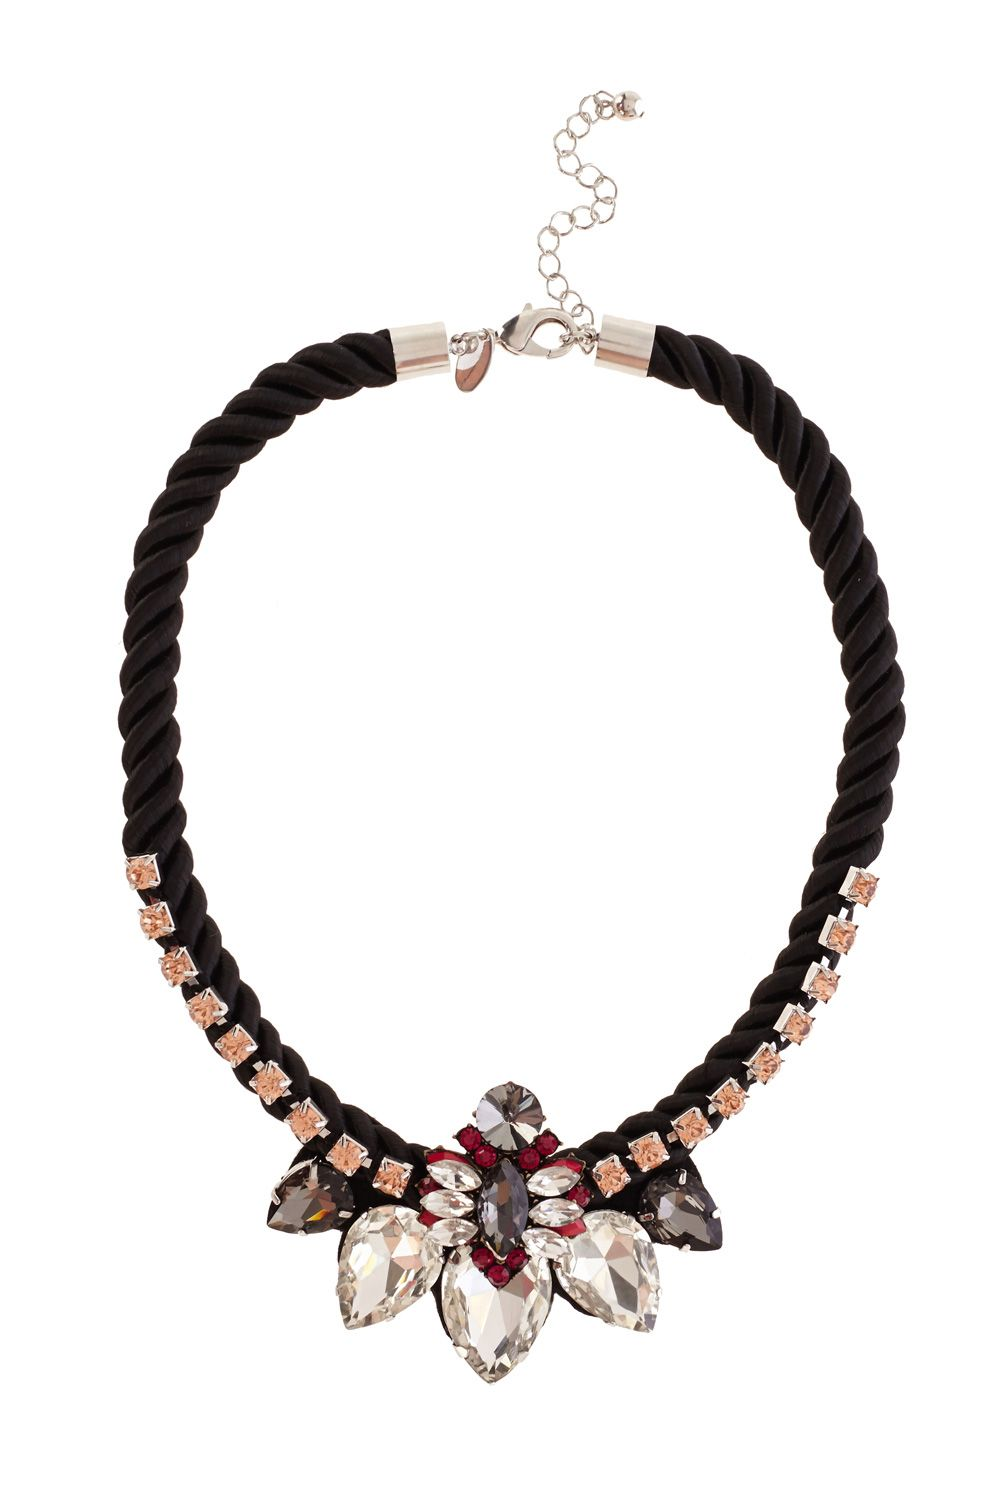 Alfonso necklace